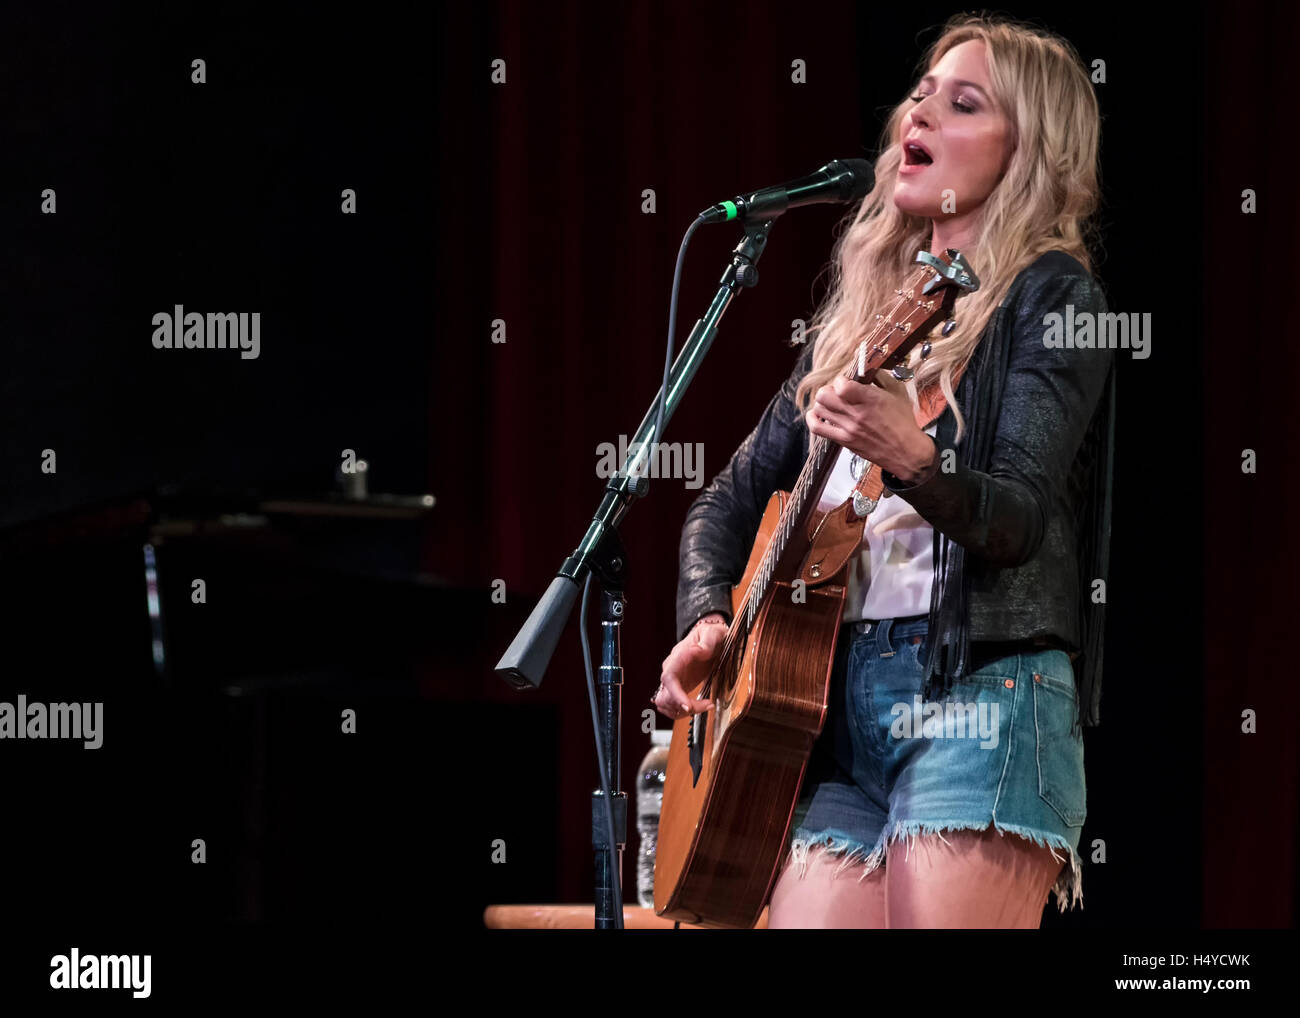 Singer Jewel performs to a standing-room only crowd at the 2015 Americana Fest on Sept. 15th, 2015, in Nashville, - Stock Image